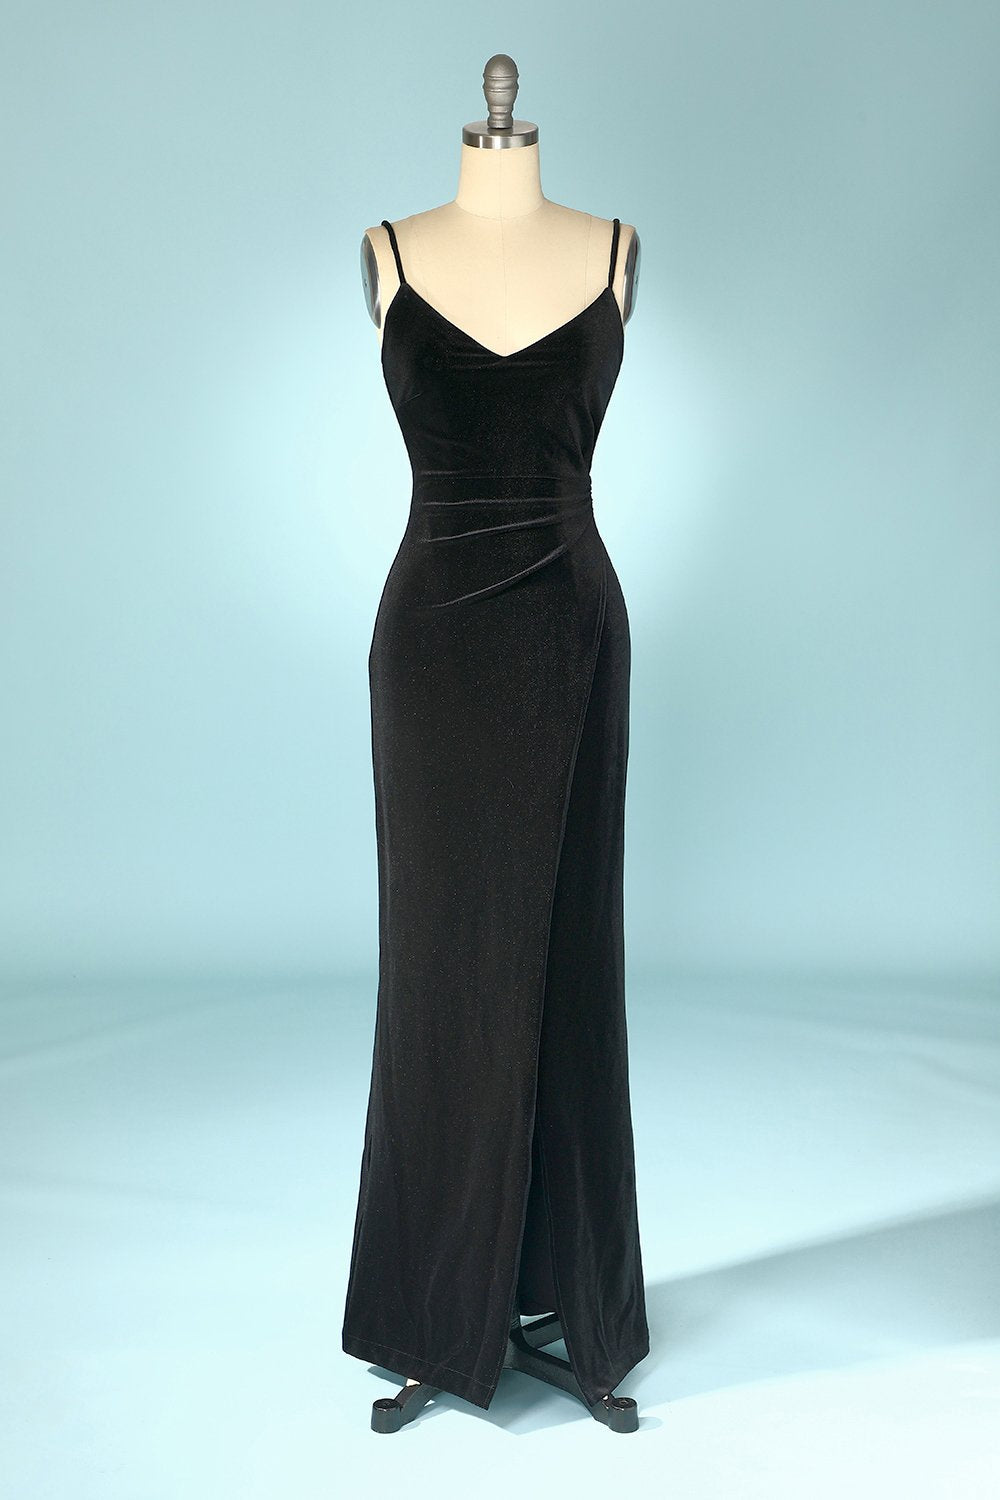 Black Velvet Evening Party Dress